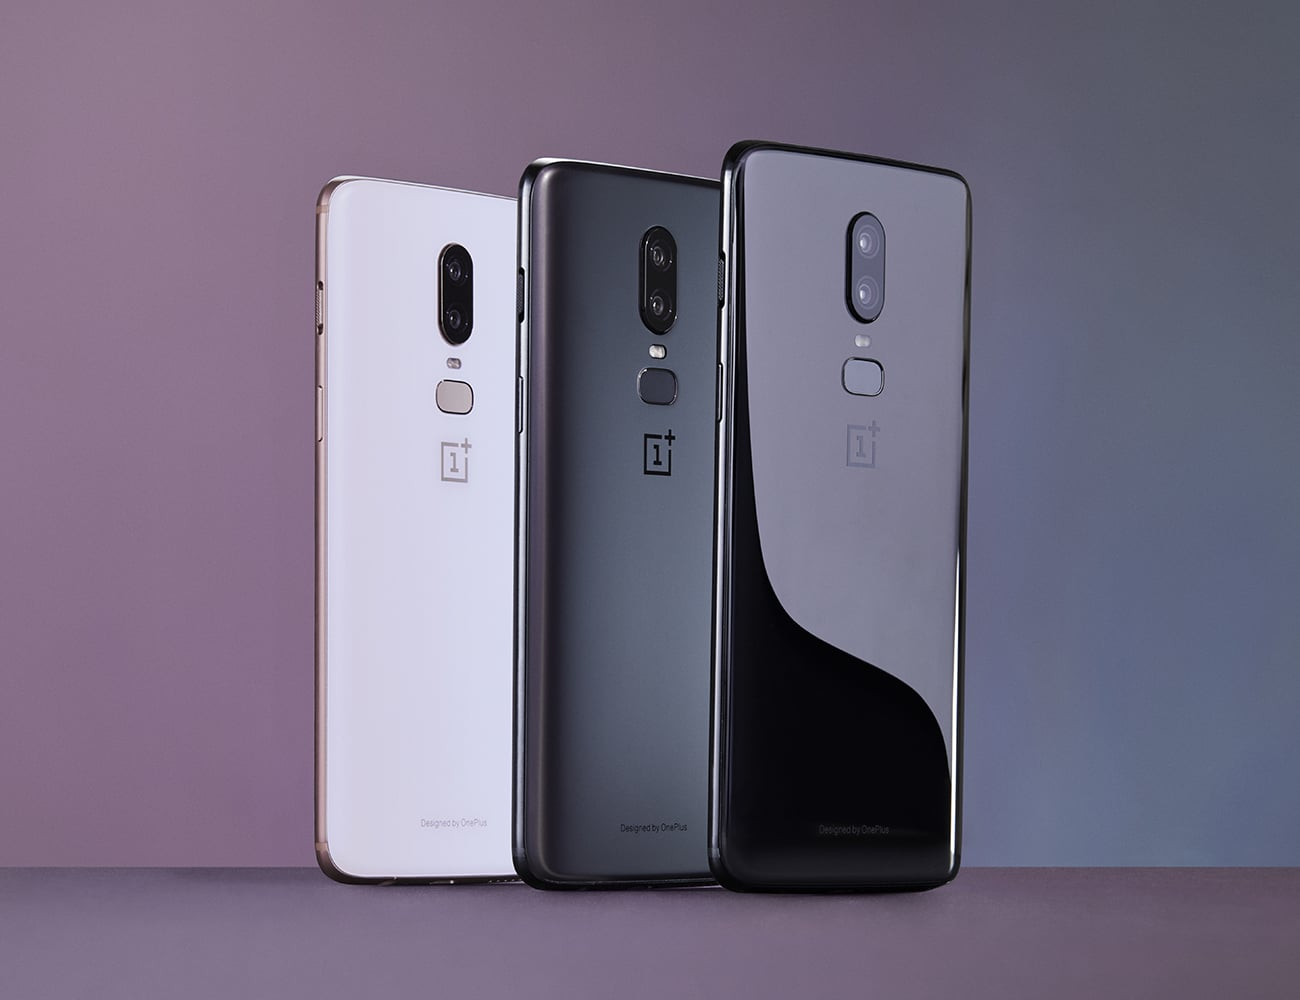 OnePlus 6 Glass Dual Camera Smartphone